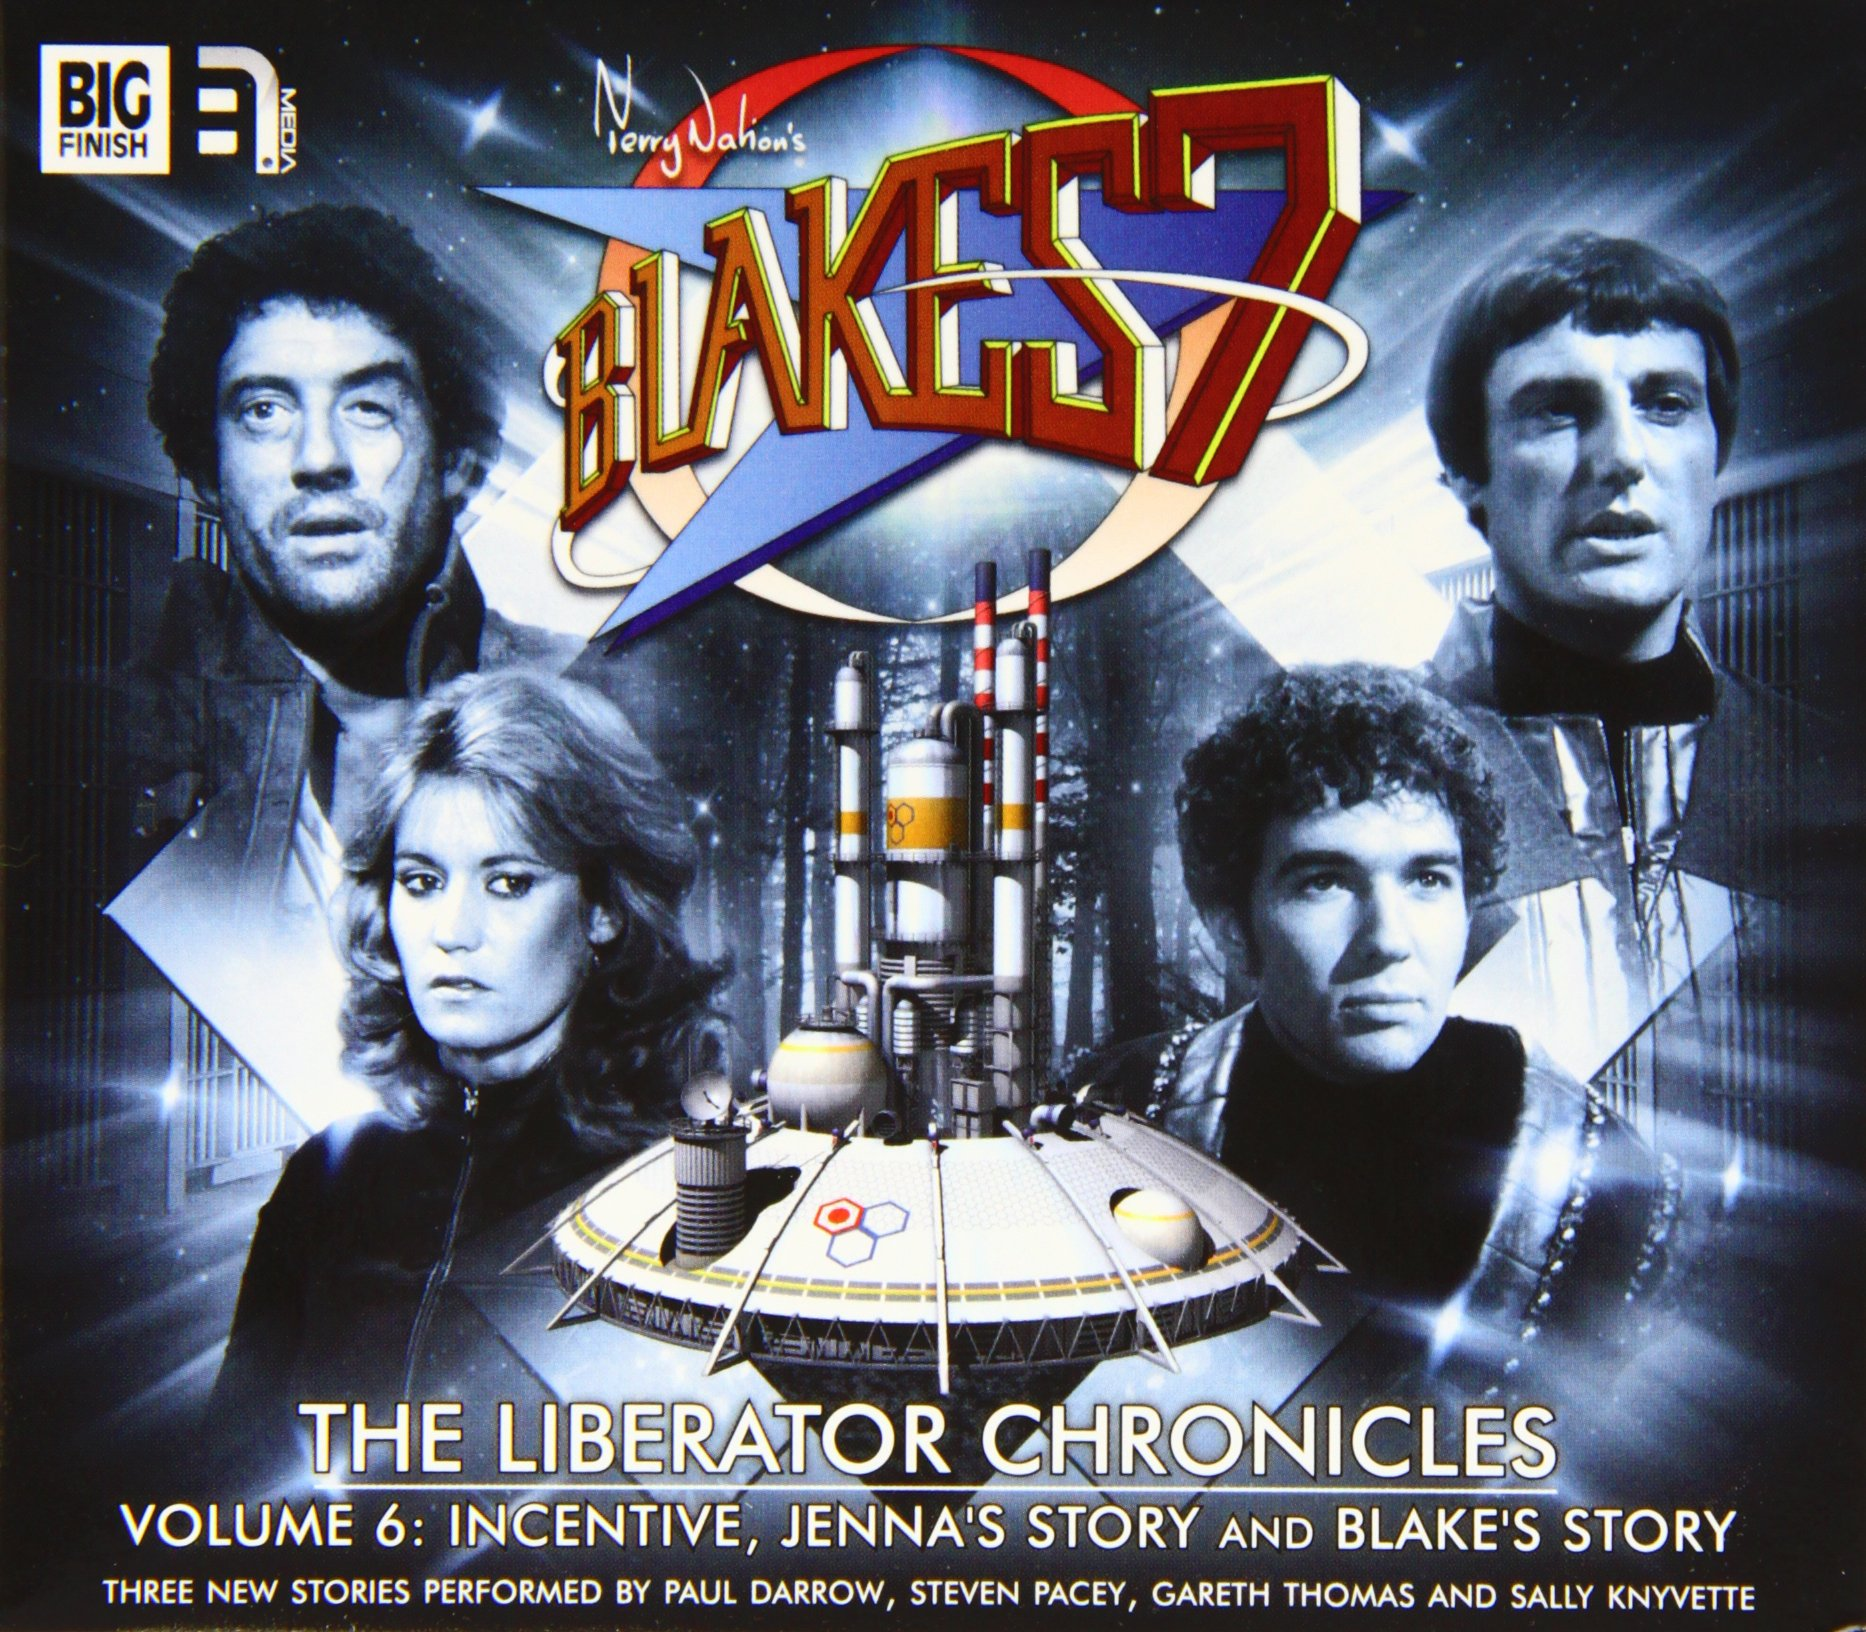 THE LIBERATOR CHRONICLES: VOL 6